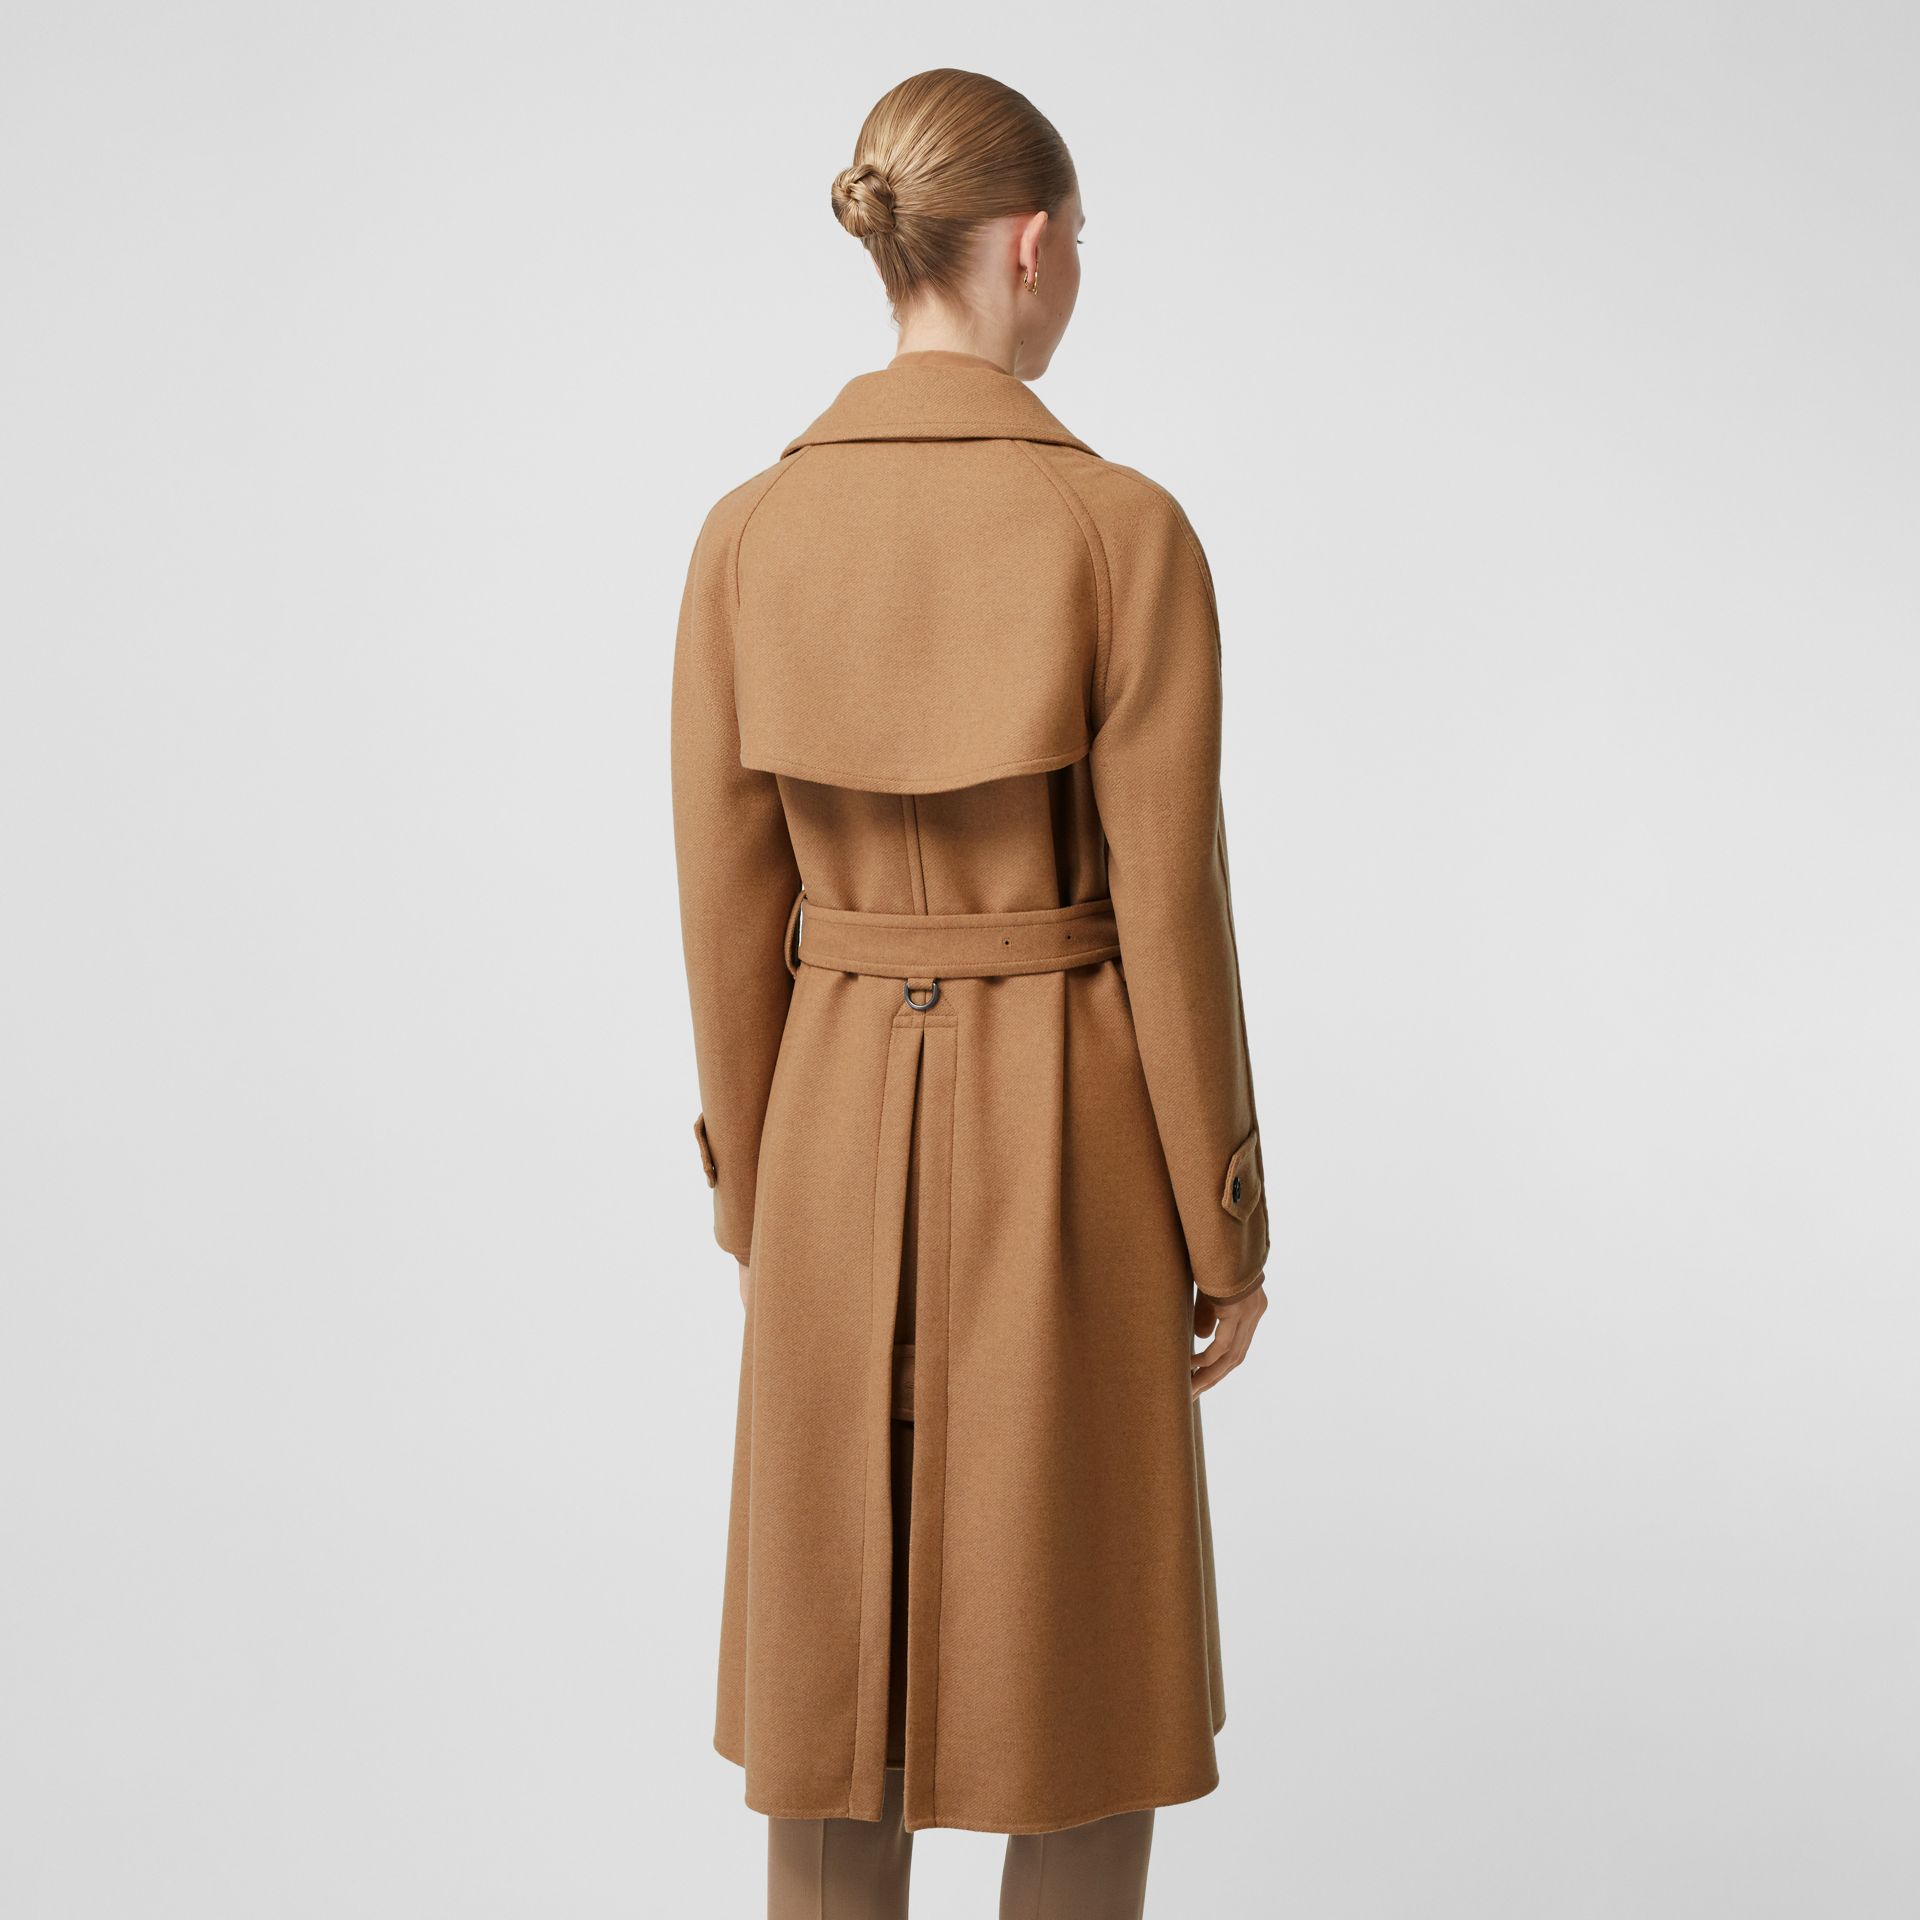 Cashmere Trench Coat in Bronze - Women | Burberry - gallery image 2